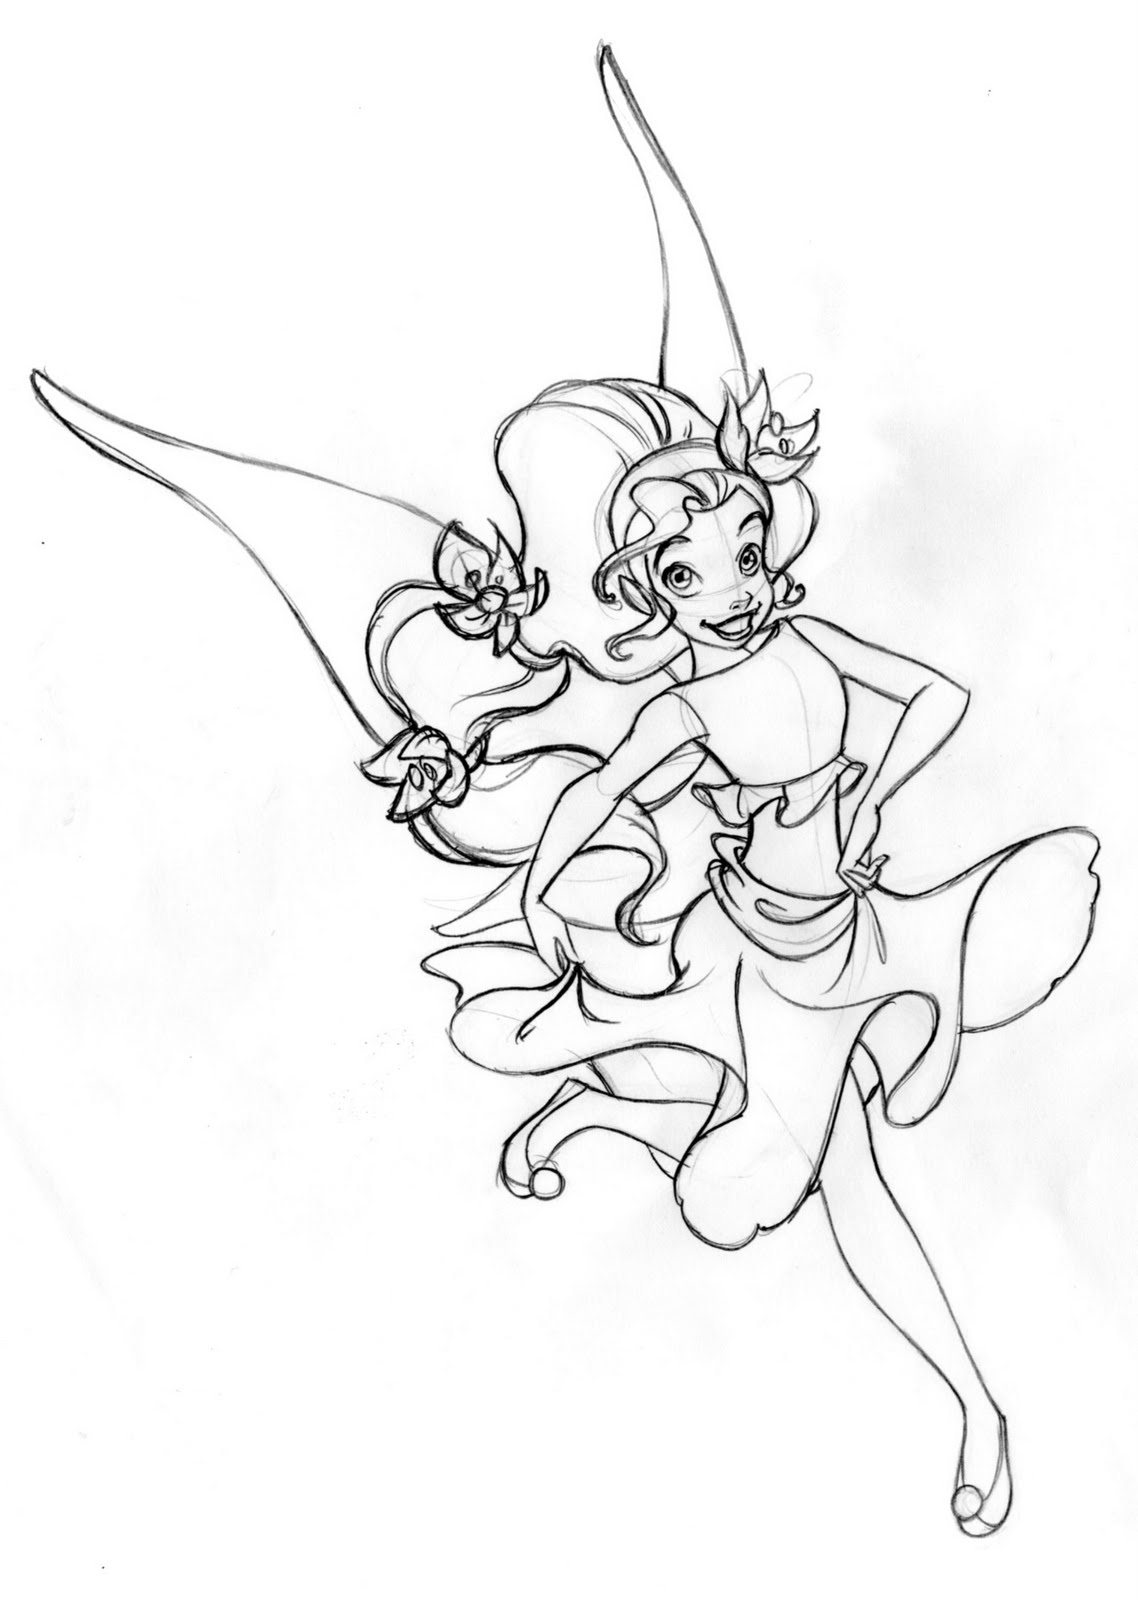 Disney Fairies character layouts